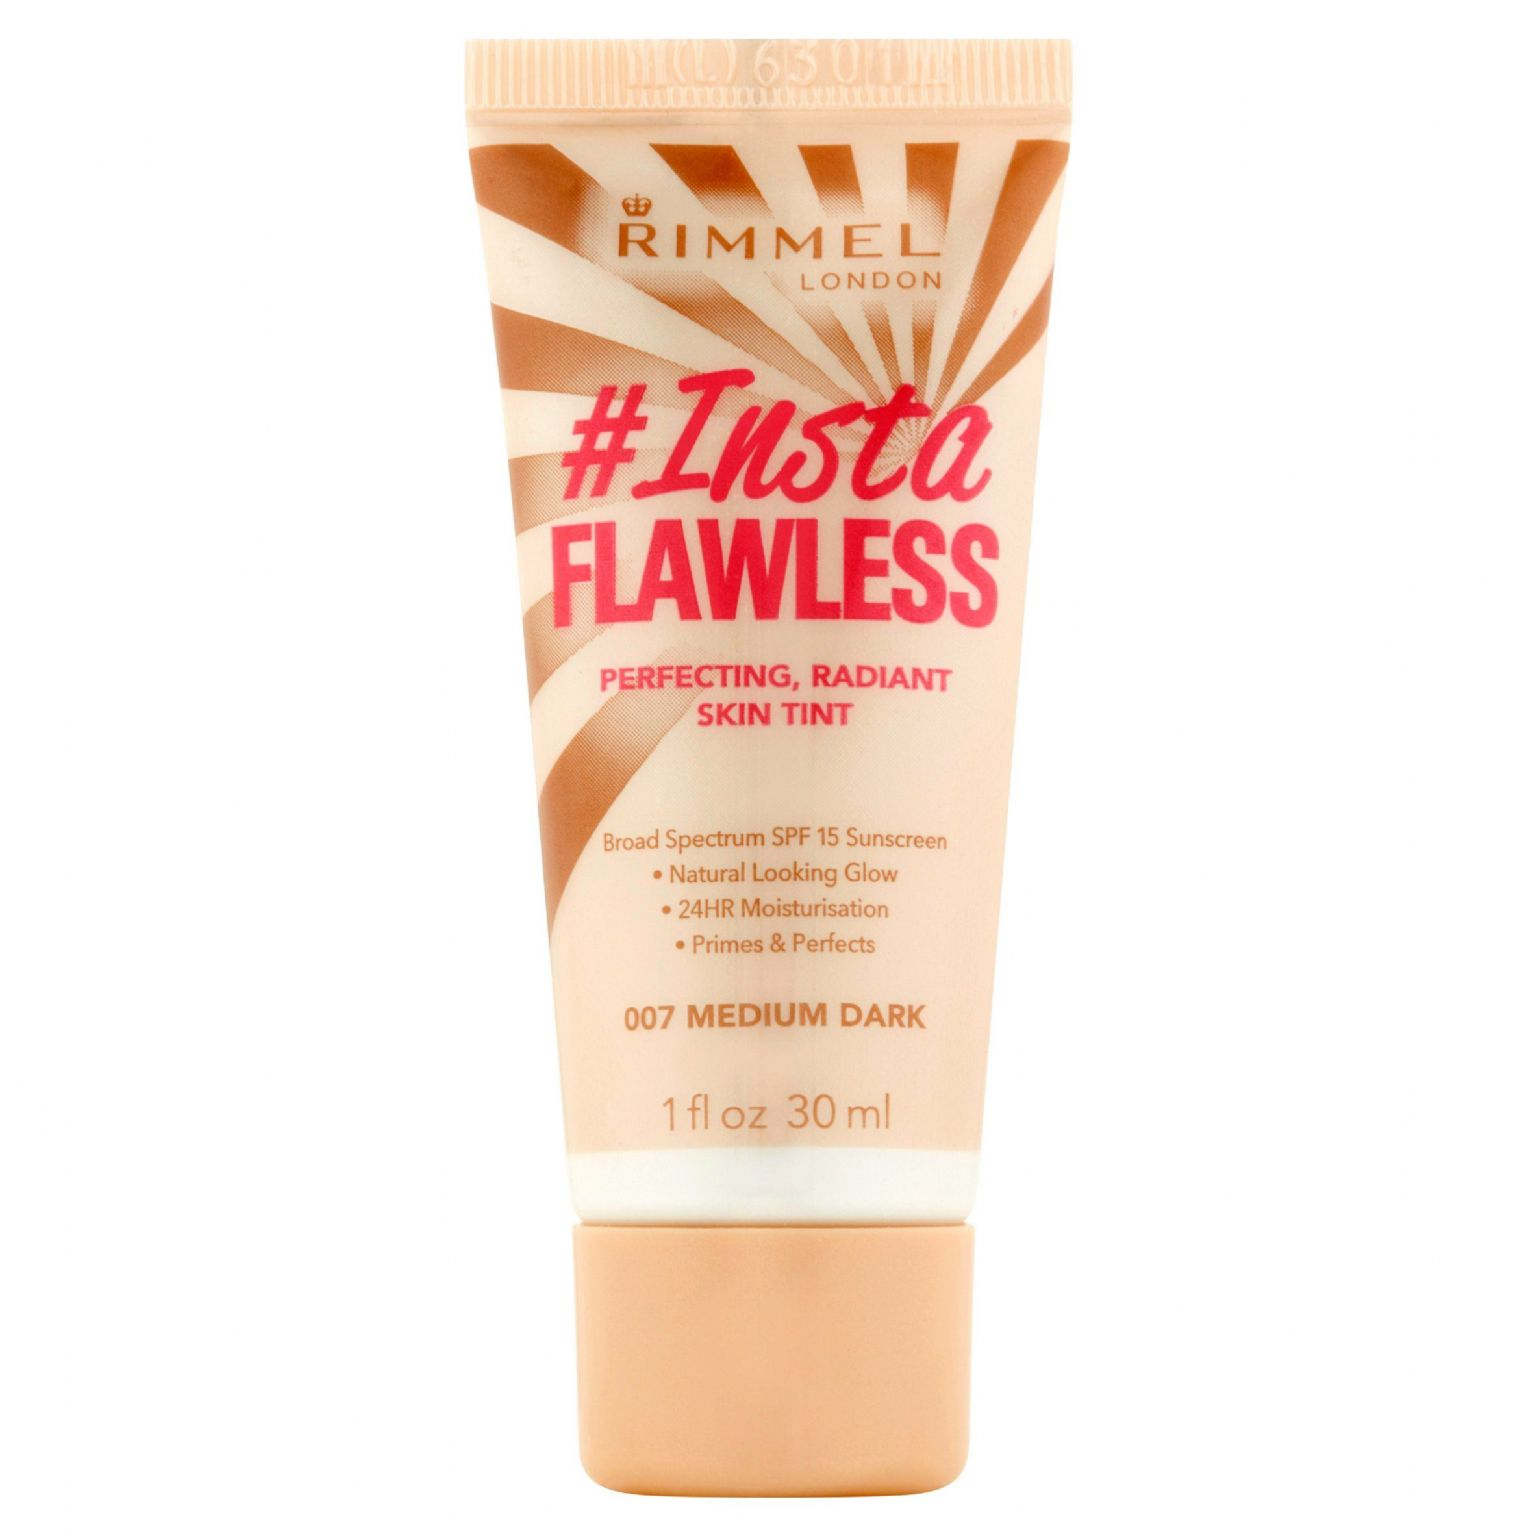 #Insta FLAWLESS Perfecting Radiant Skin Tint